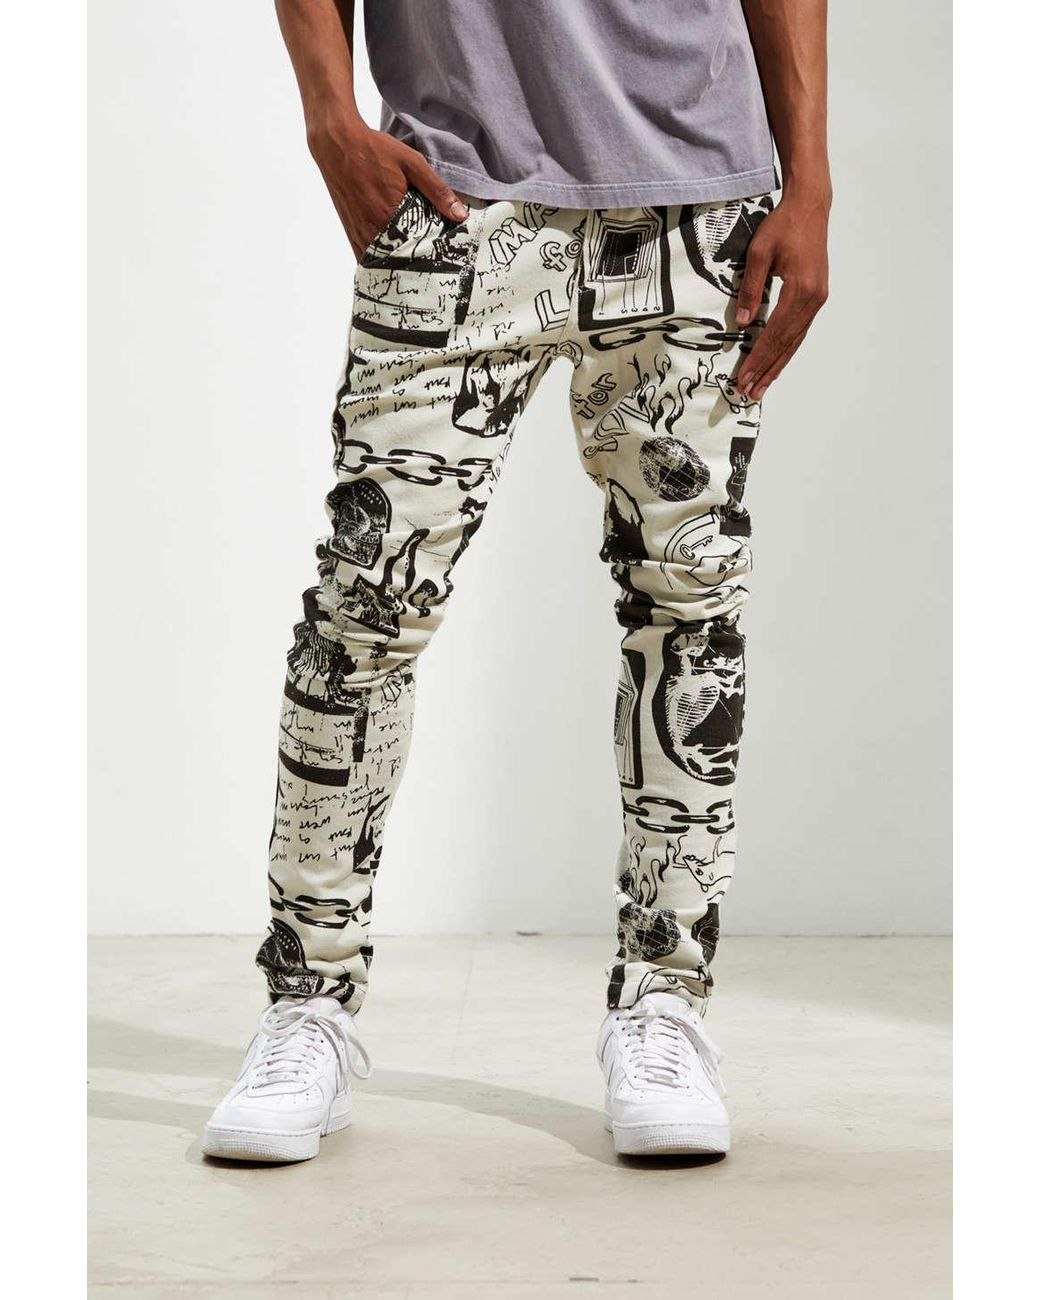 Men's Uo Outland Art Print Skinny Pant